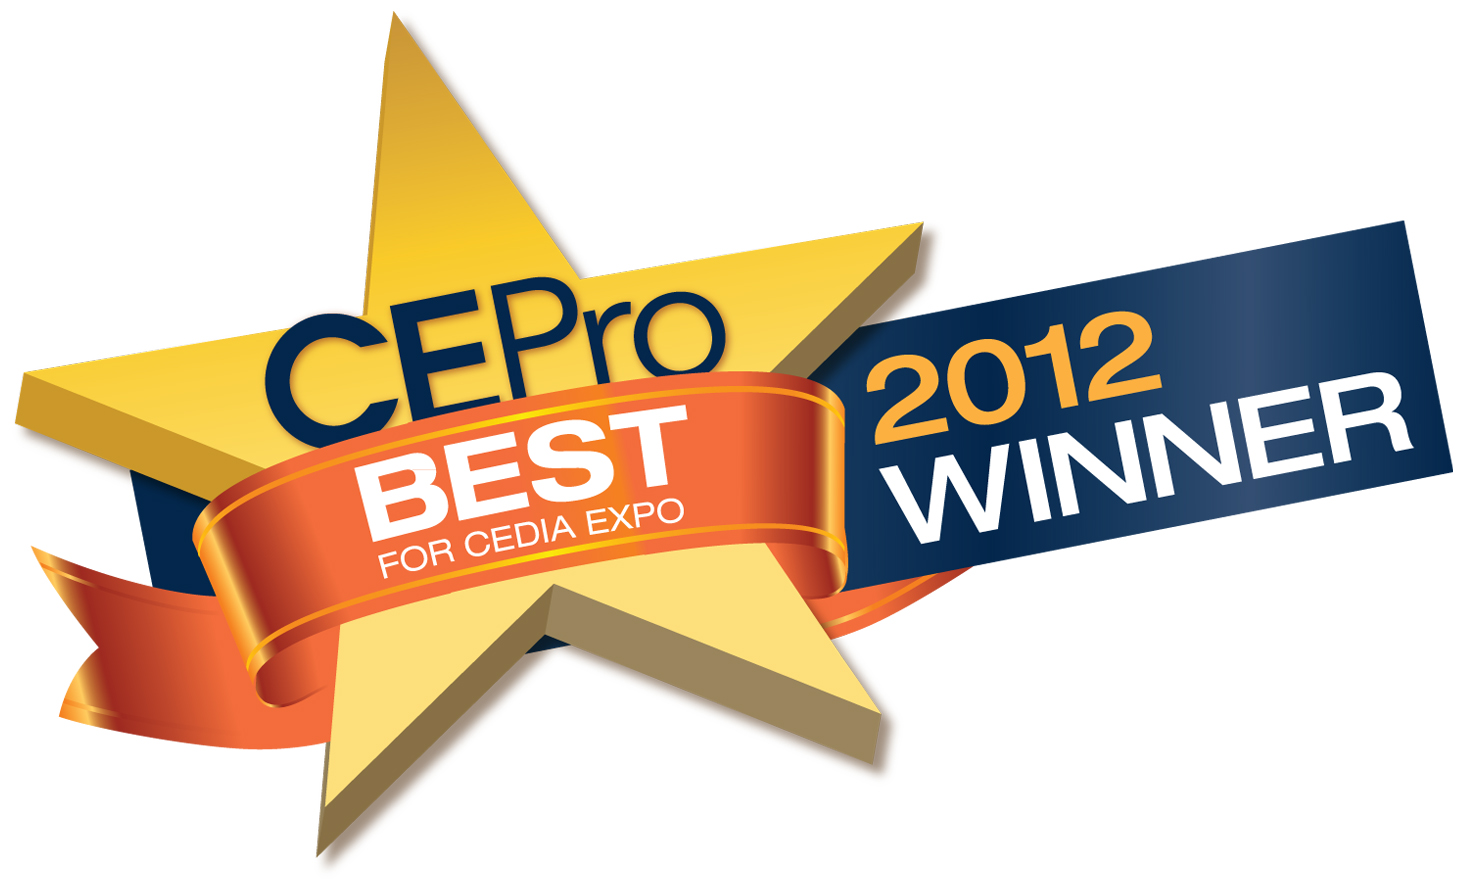 CE Pro Best Award Winner 2012